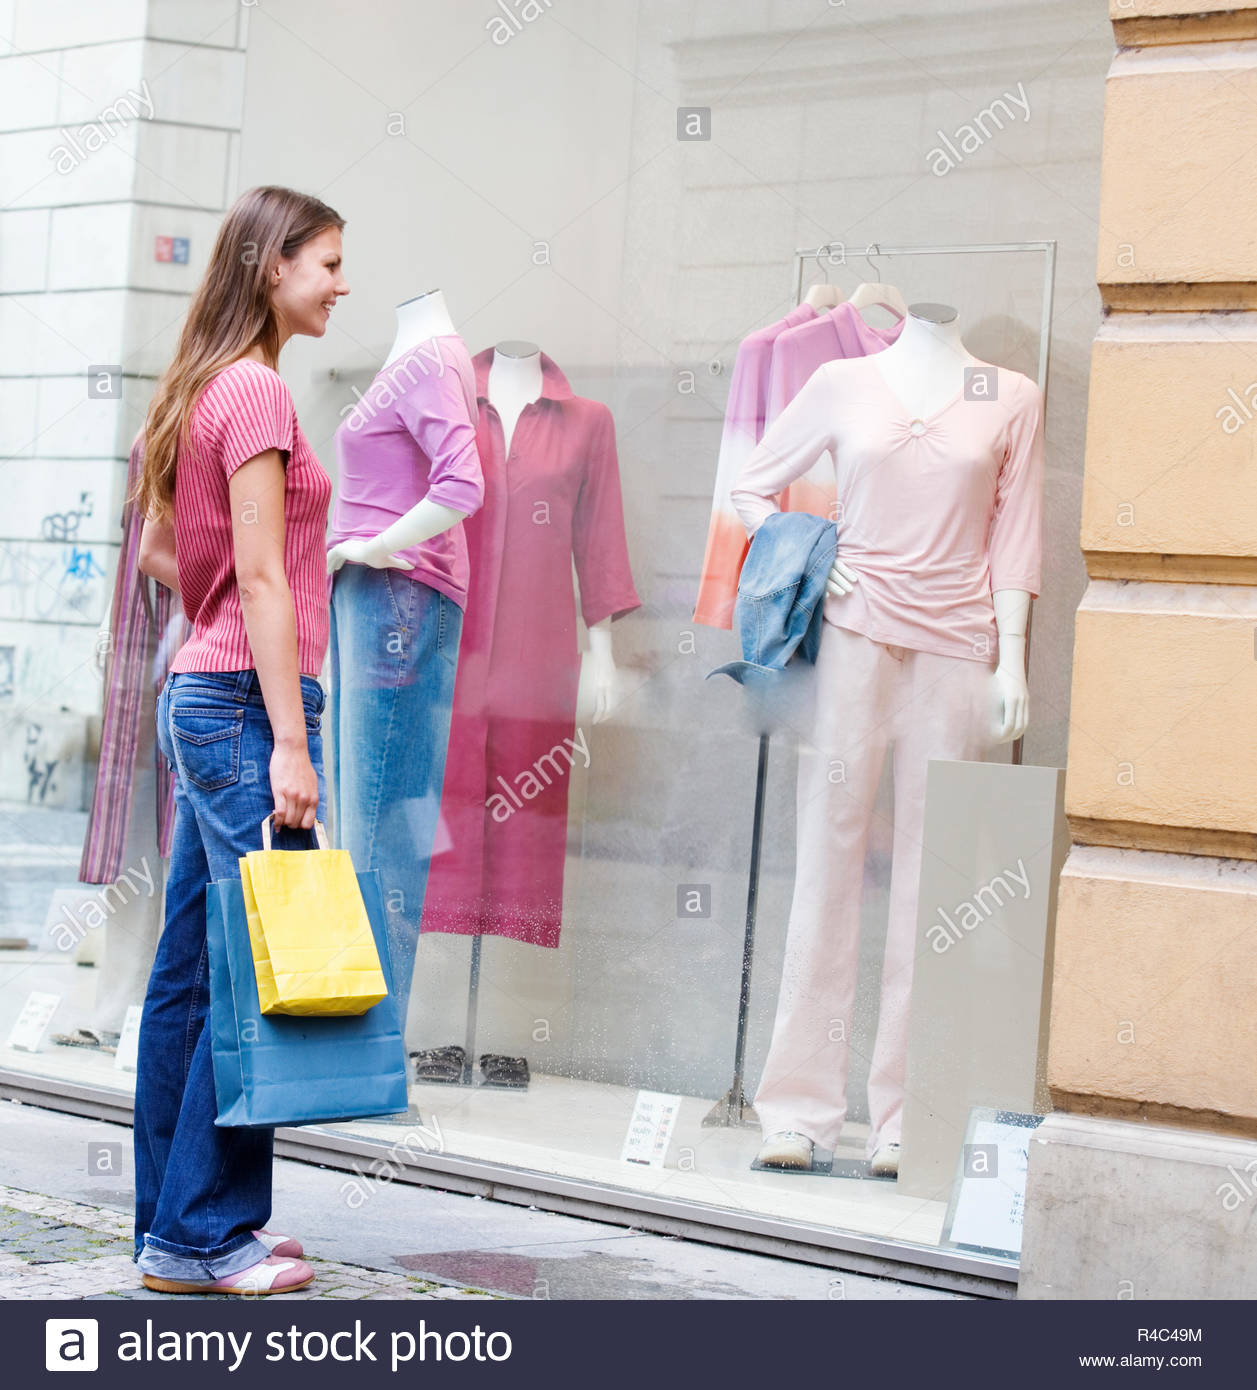 A young woman looking in a shop window - Stock Image